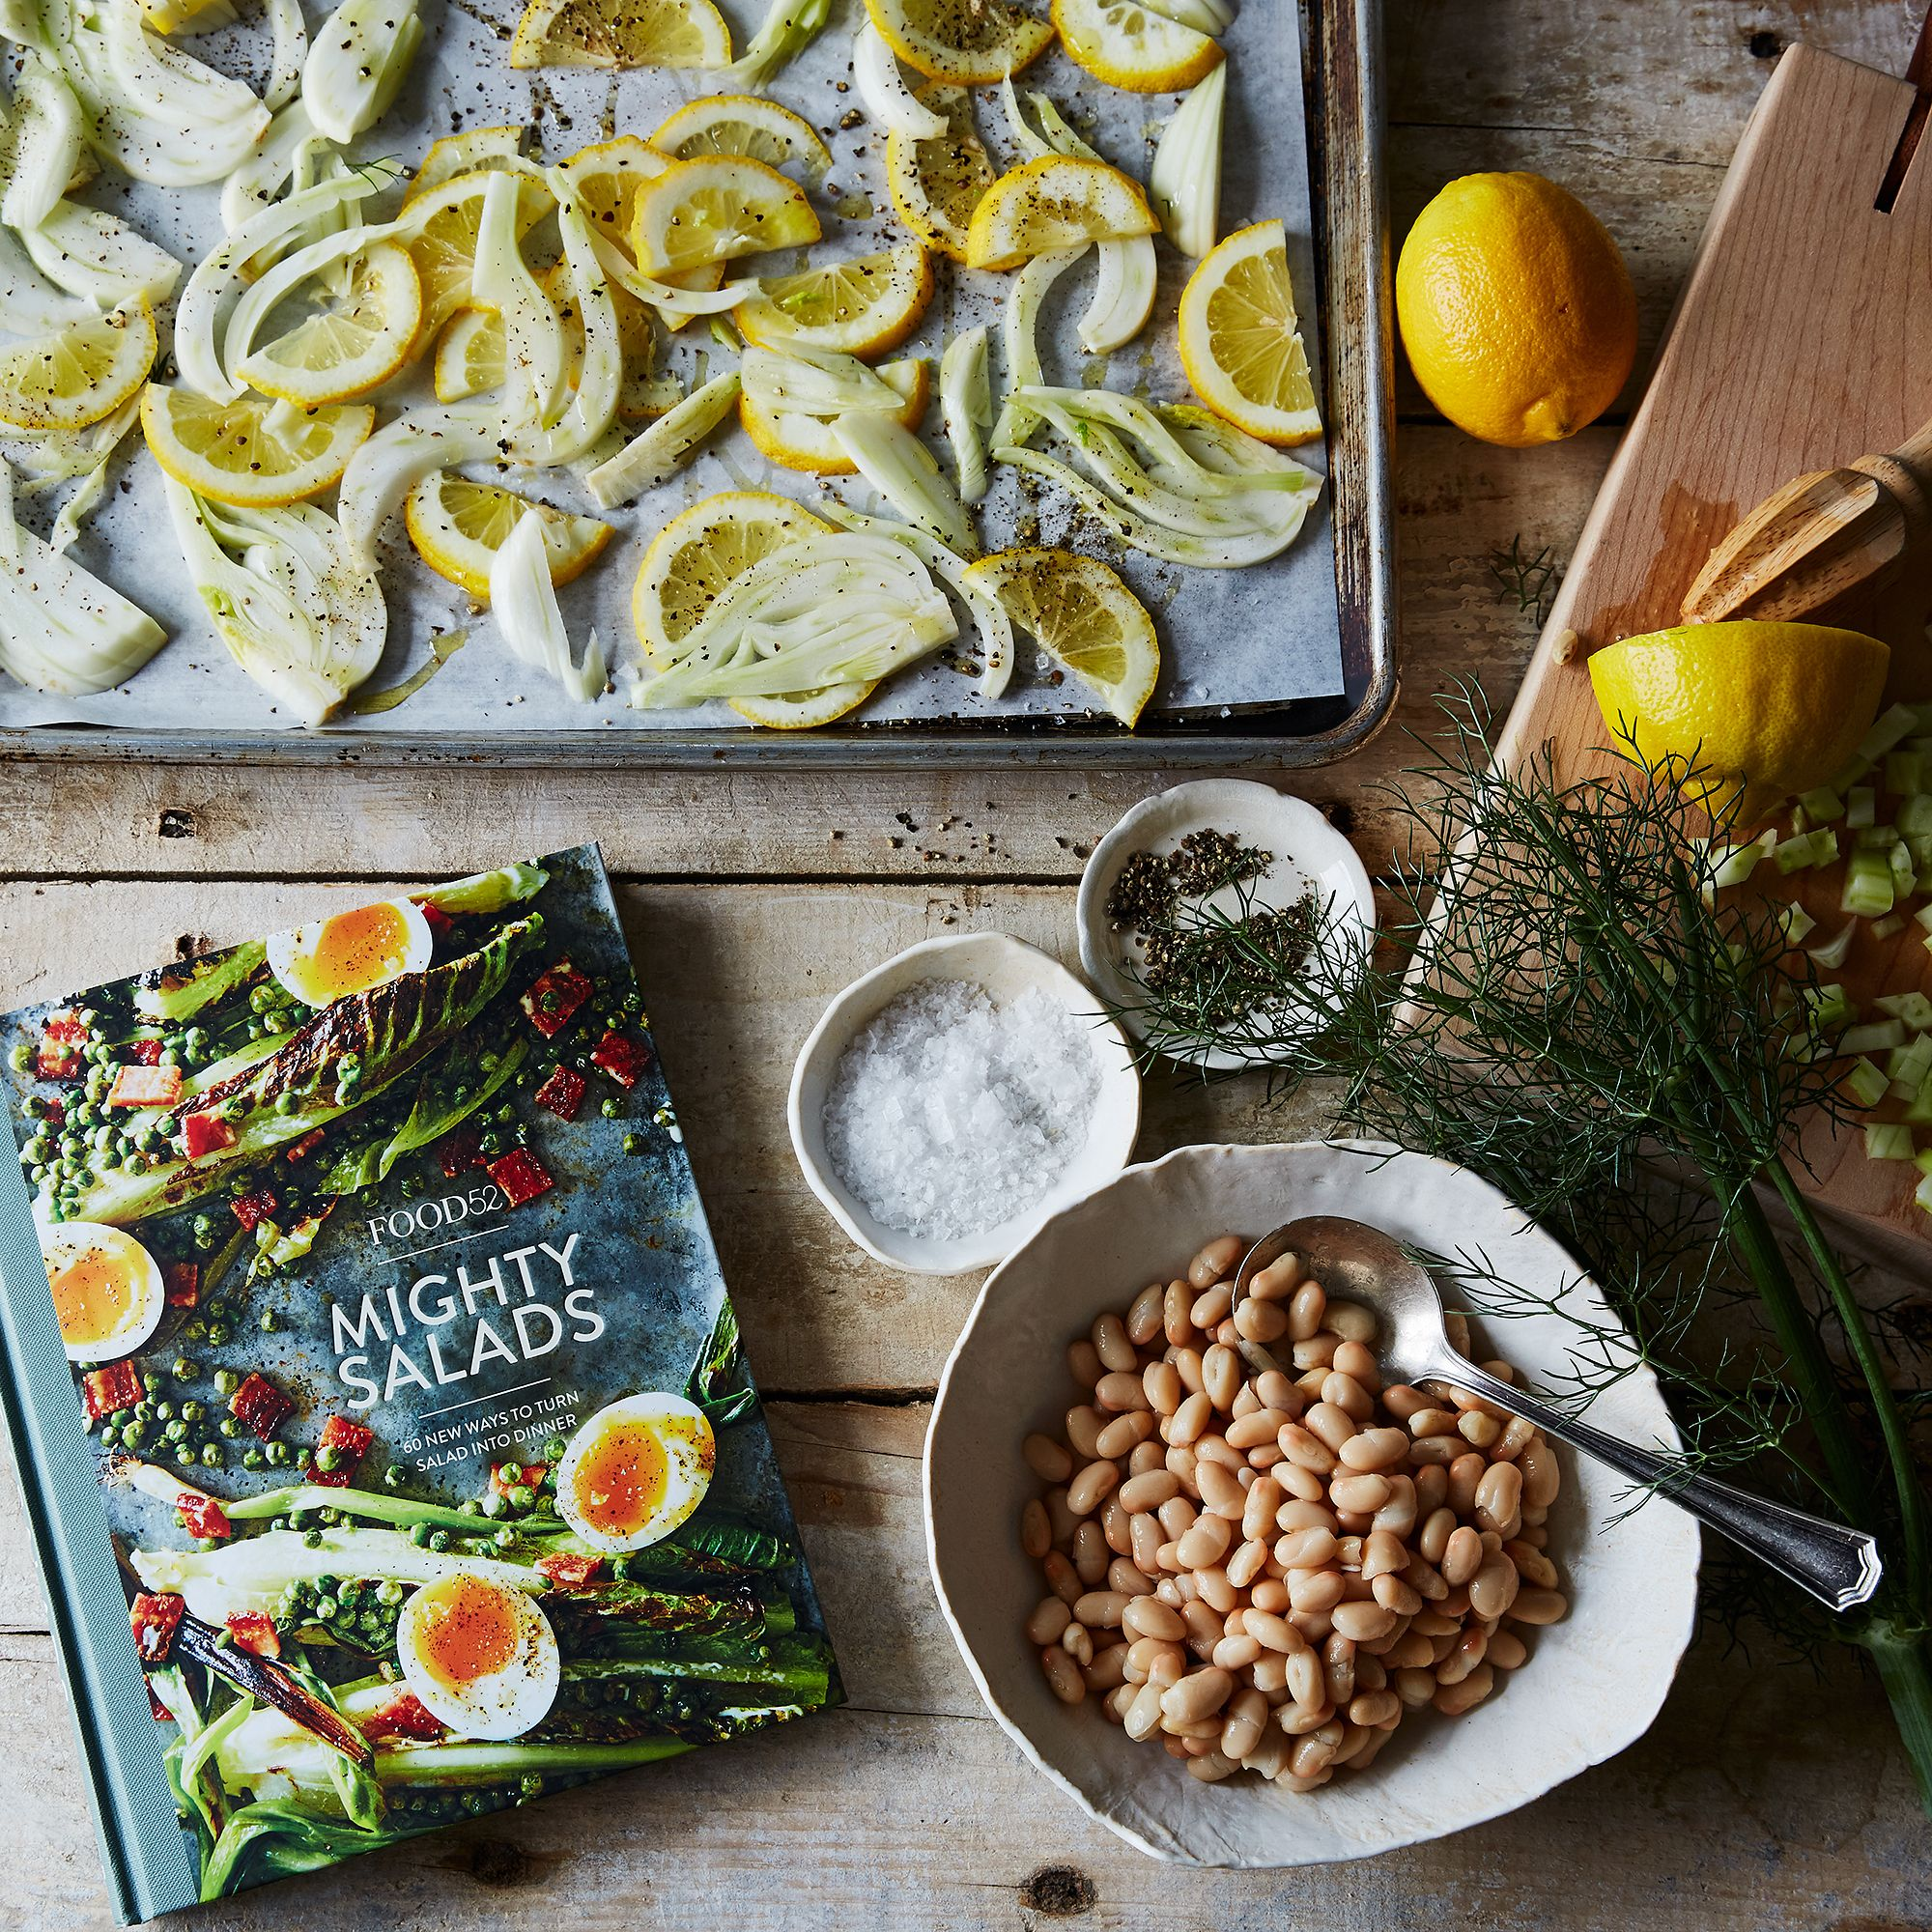 Signed Copies Food52 Cookbook Collection On Food52